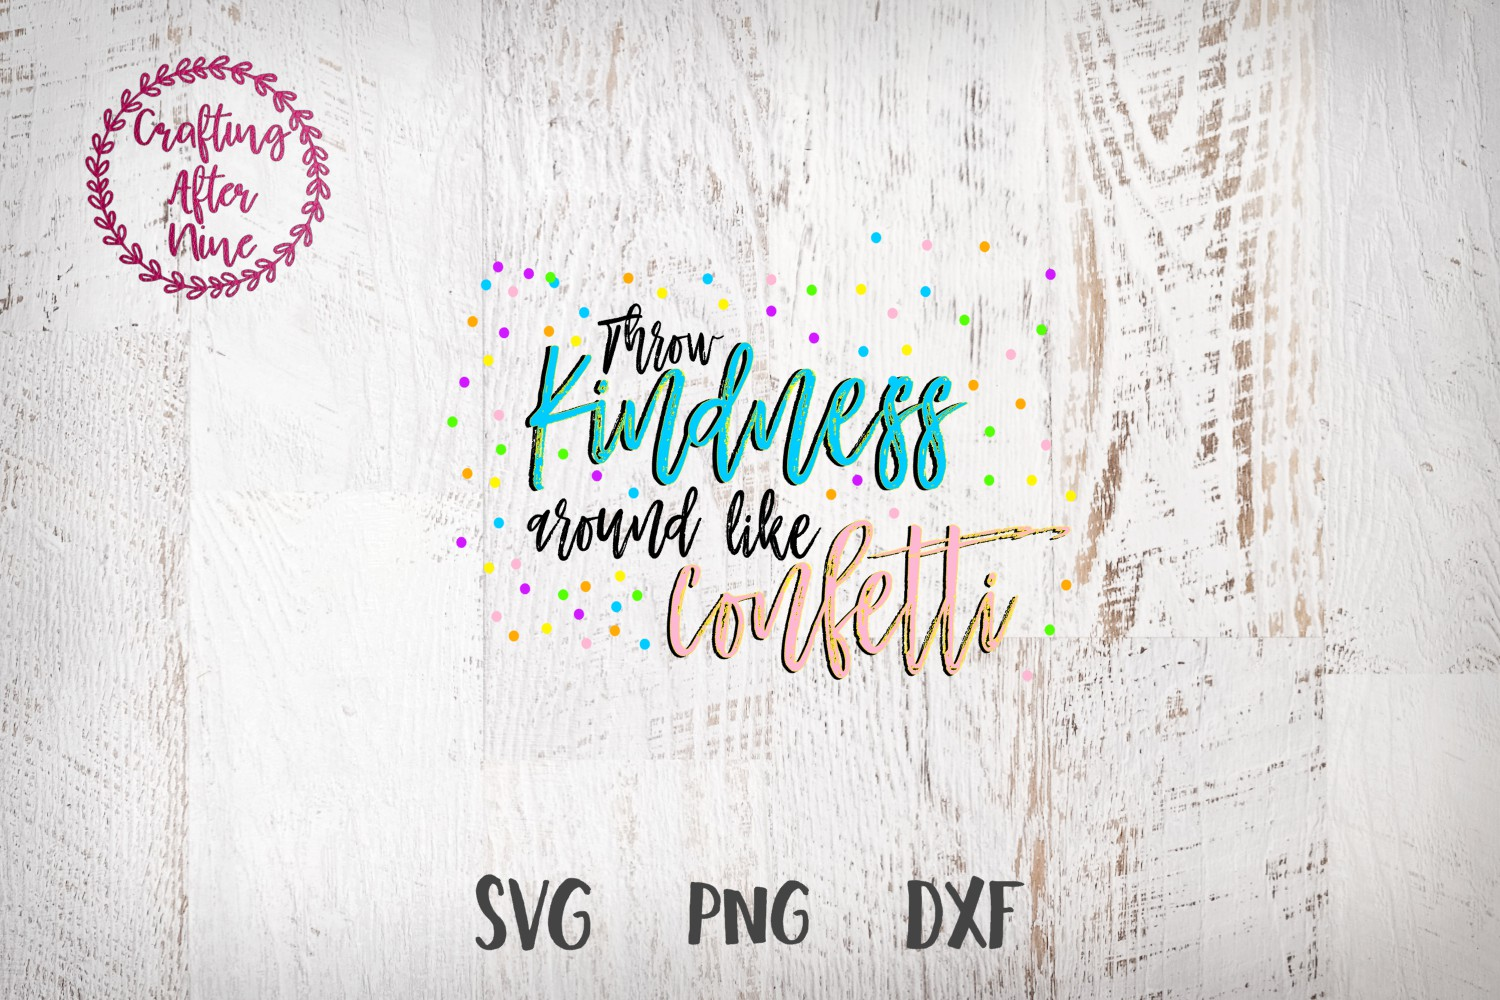 Download Free Throw Kindness Around Like Confetti Graphic By Crafting After for Cricut Explore, Silhouette and other cutting machines.